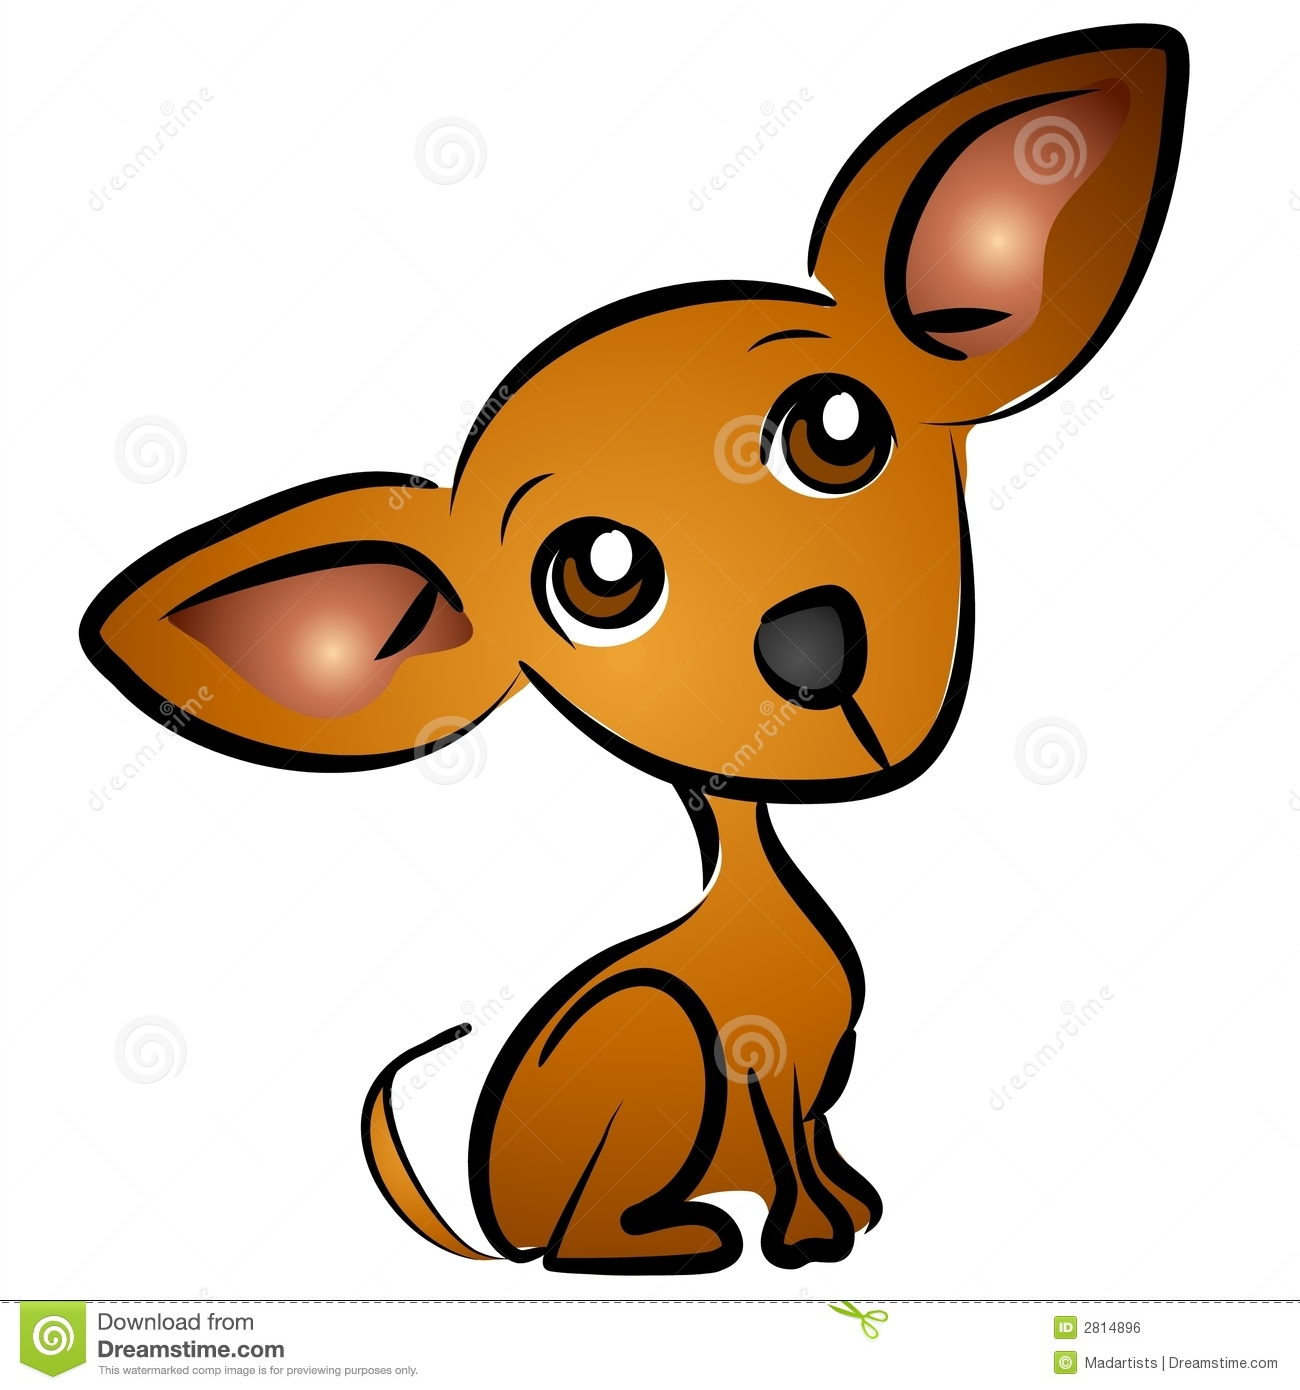 Chihuahua clipart cute Images Panda Free Clipart ·